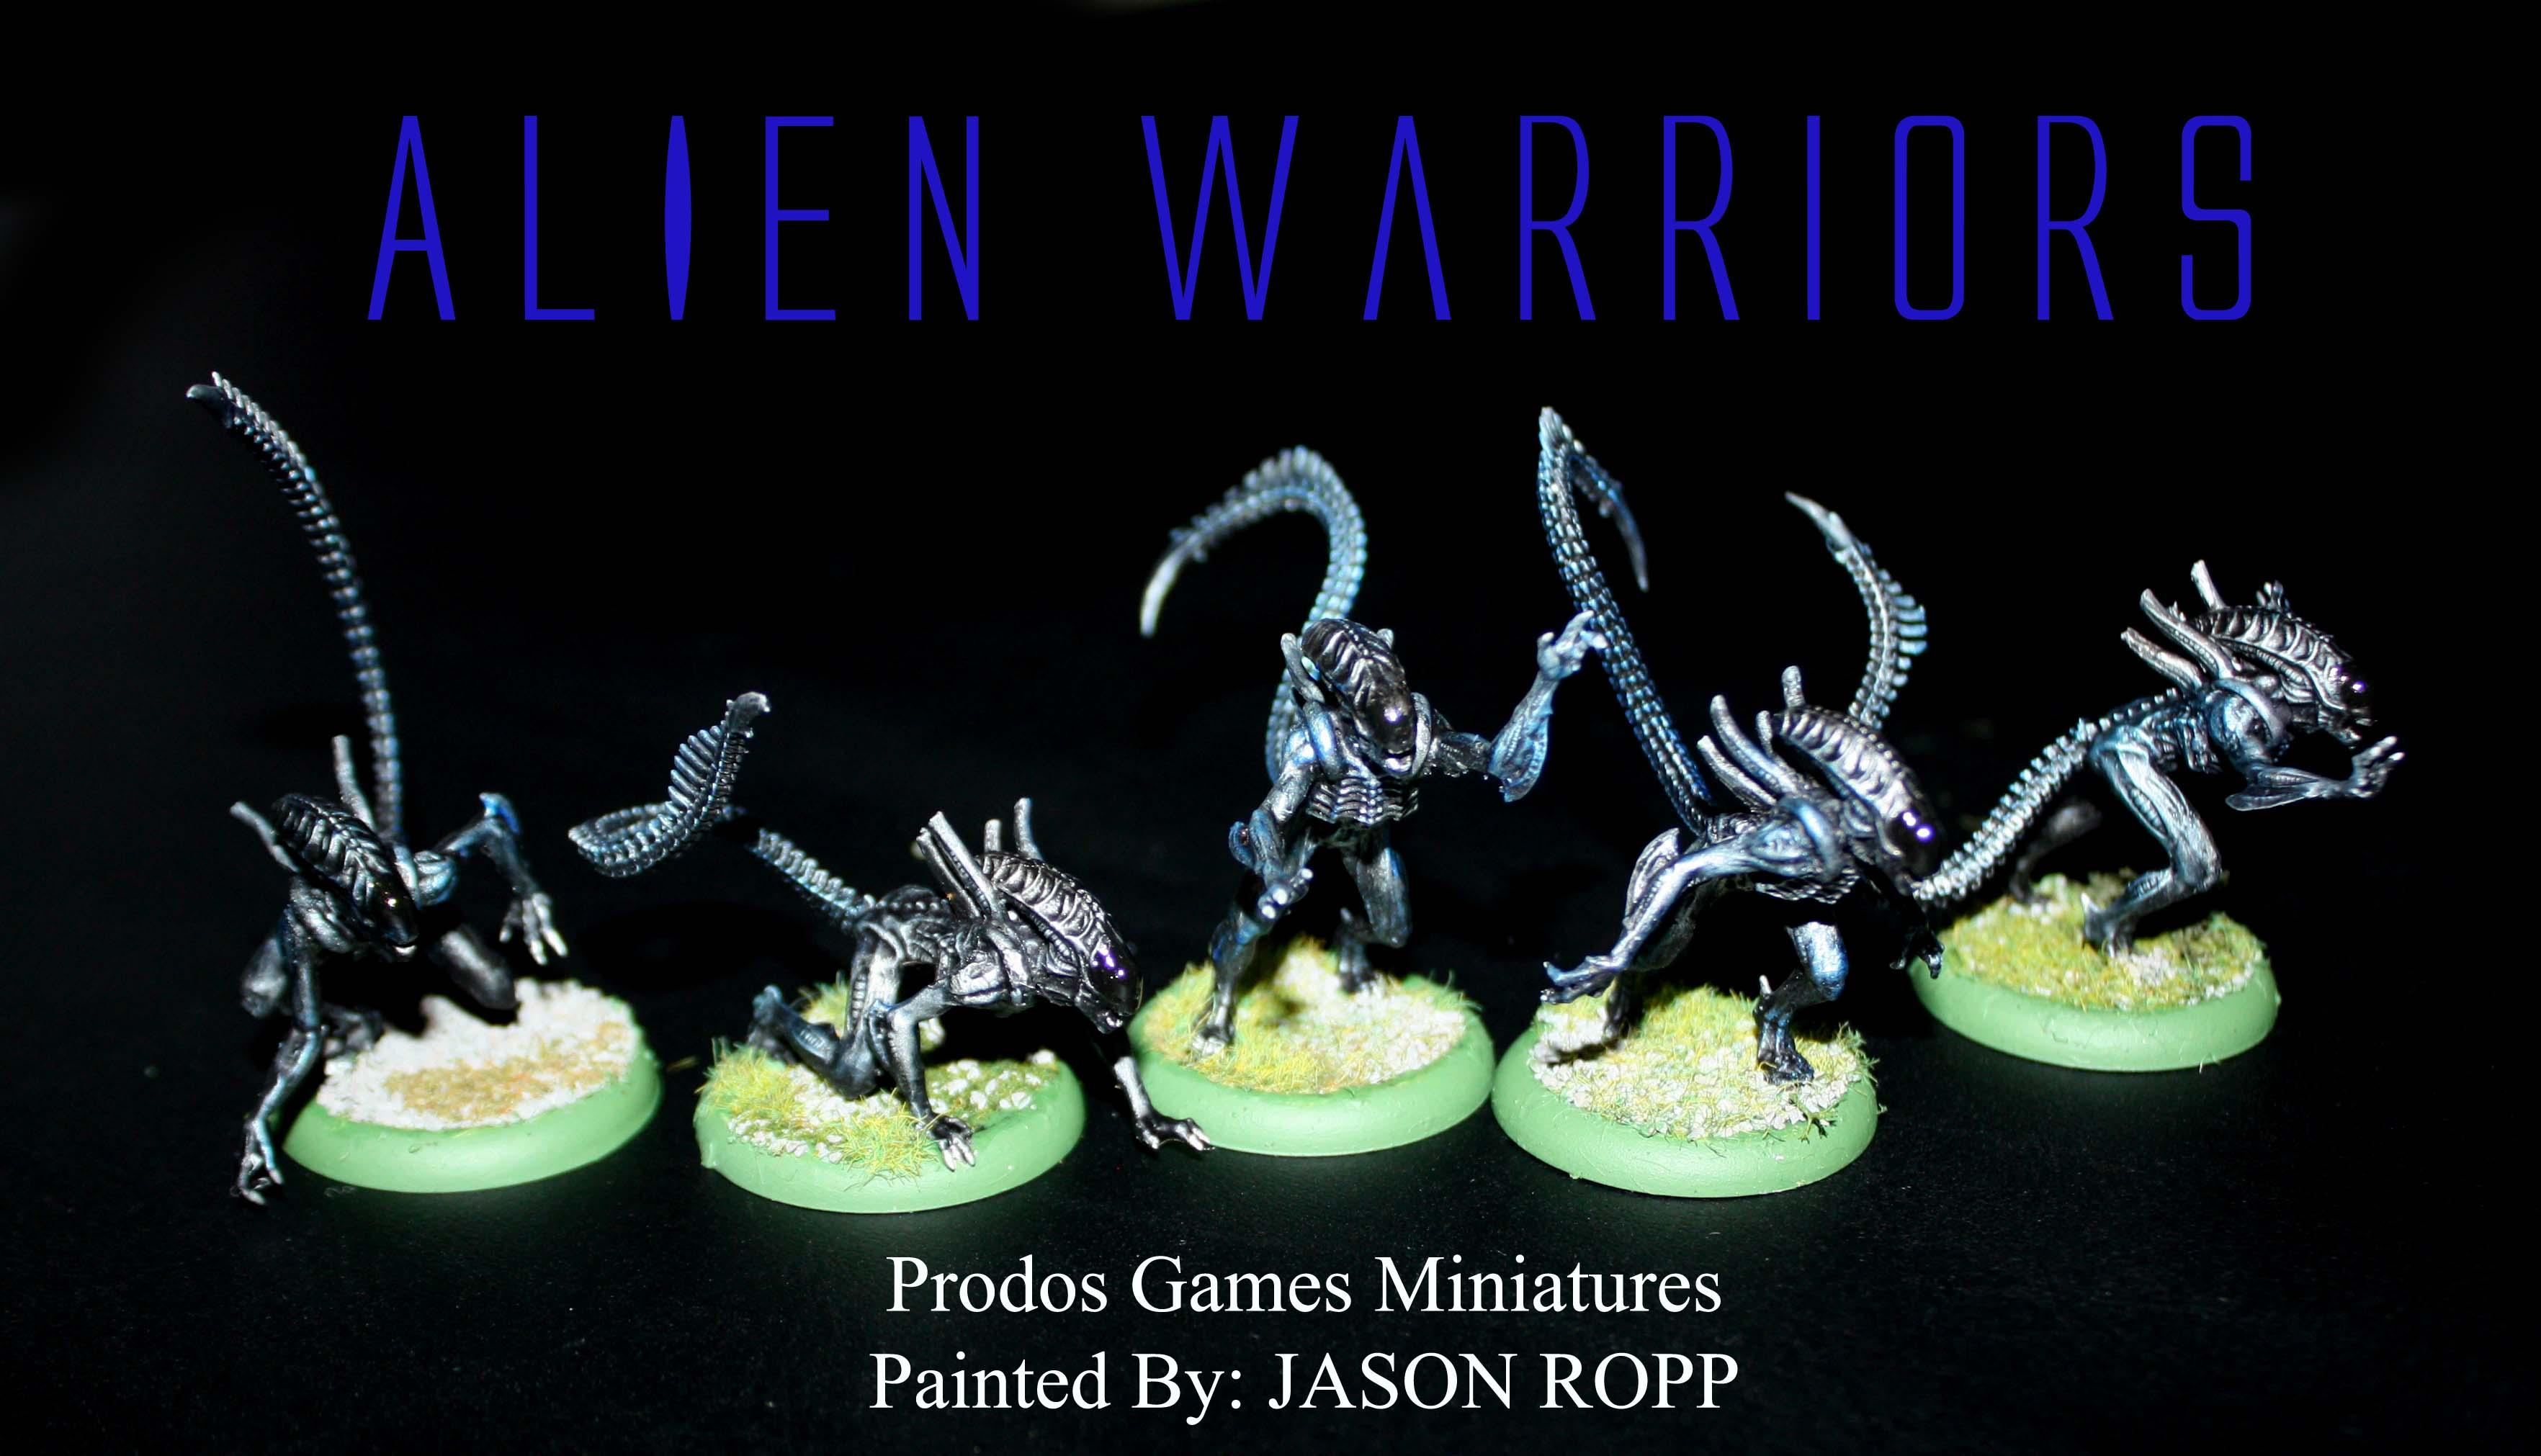 28mm, 32mm, Alien, Alienids, Army, Avp, Crusher, Flying Queen, Game, Prodps, Stalkers, Tyranids, Wargame, Wargamer, Warriors, Xenomorph